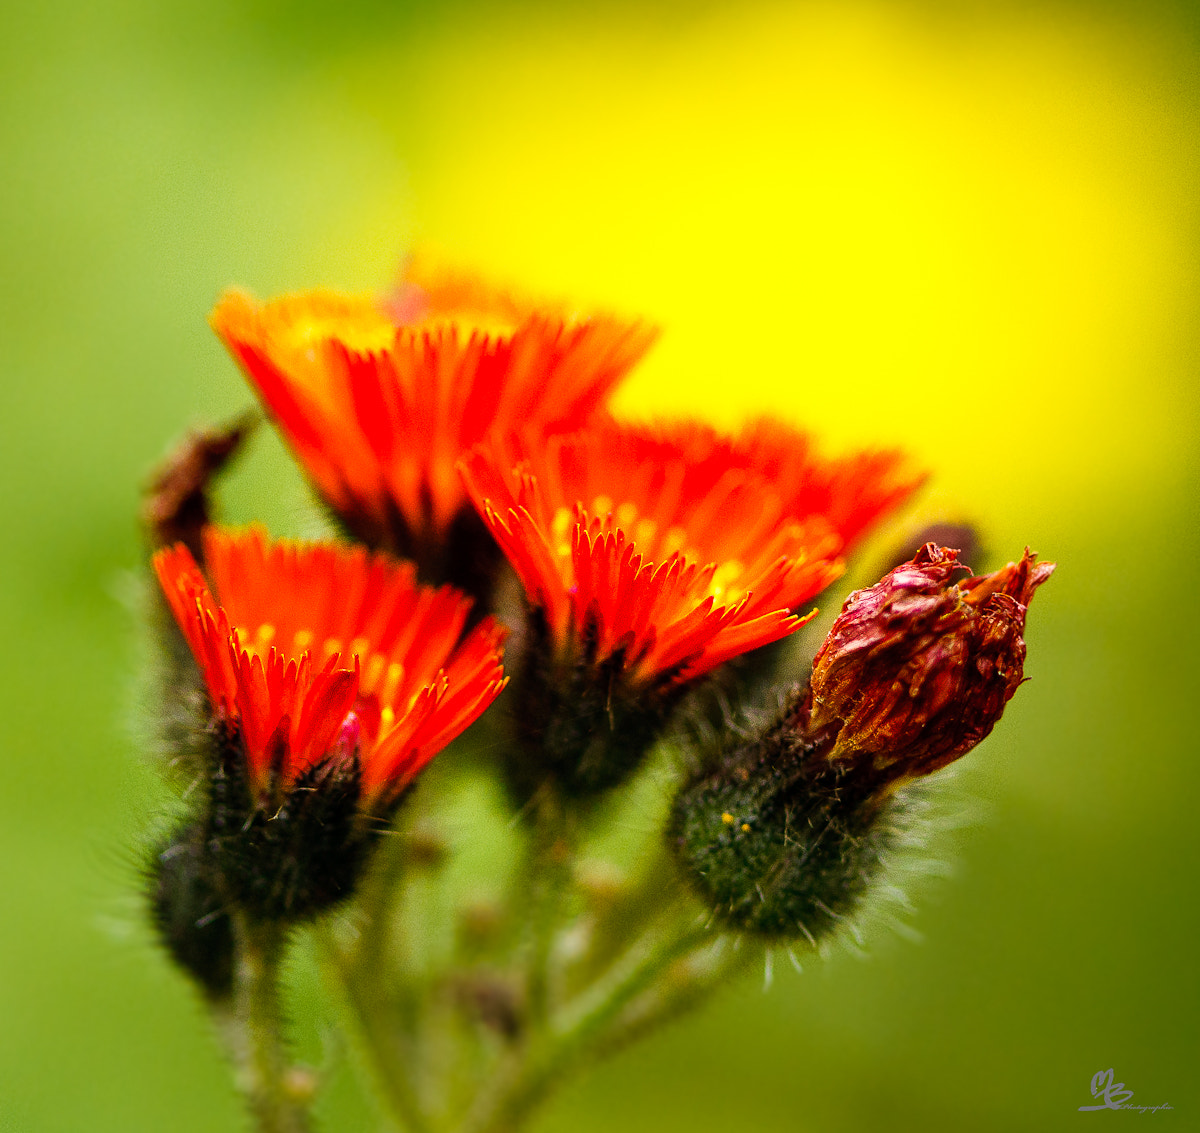 Photograph Art flowers by Mario Brouard on 500px